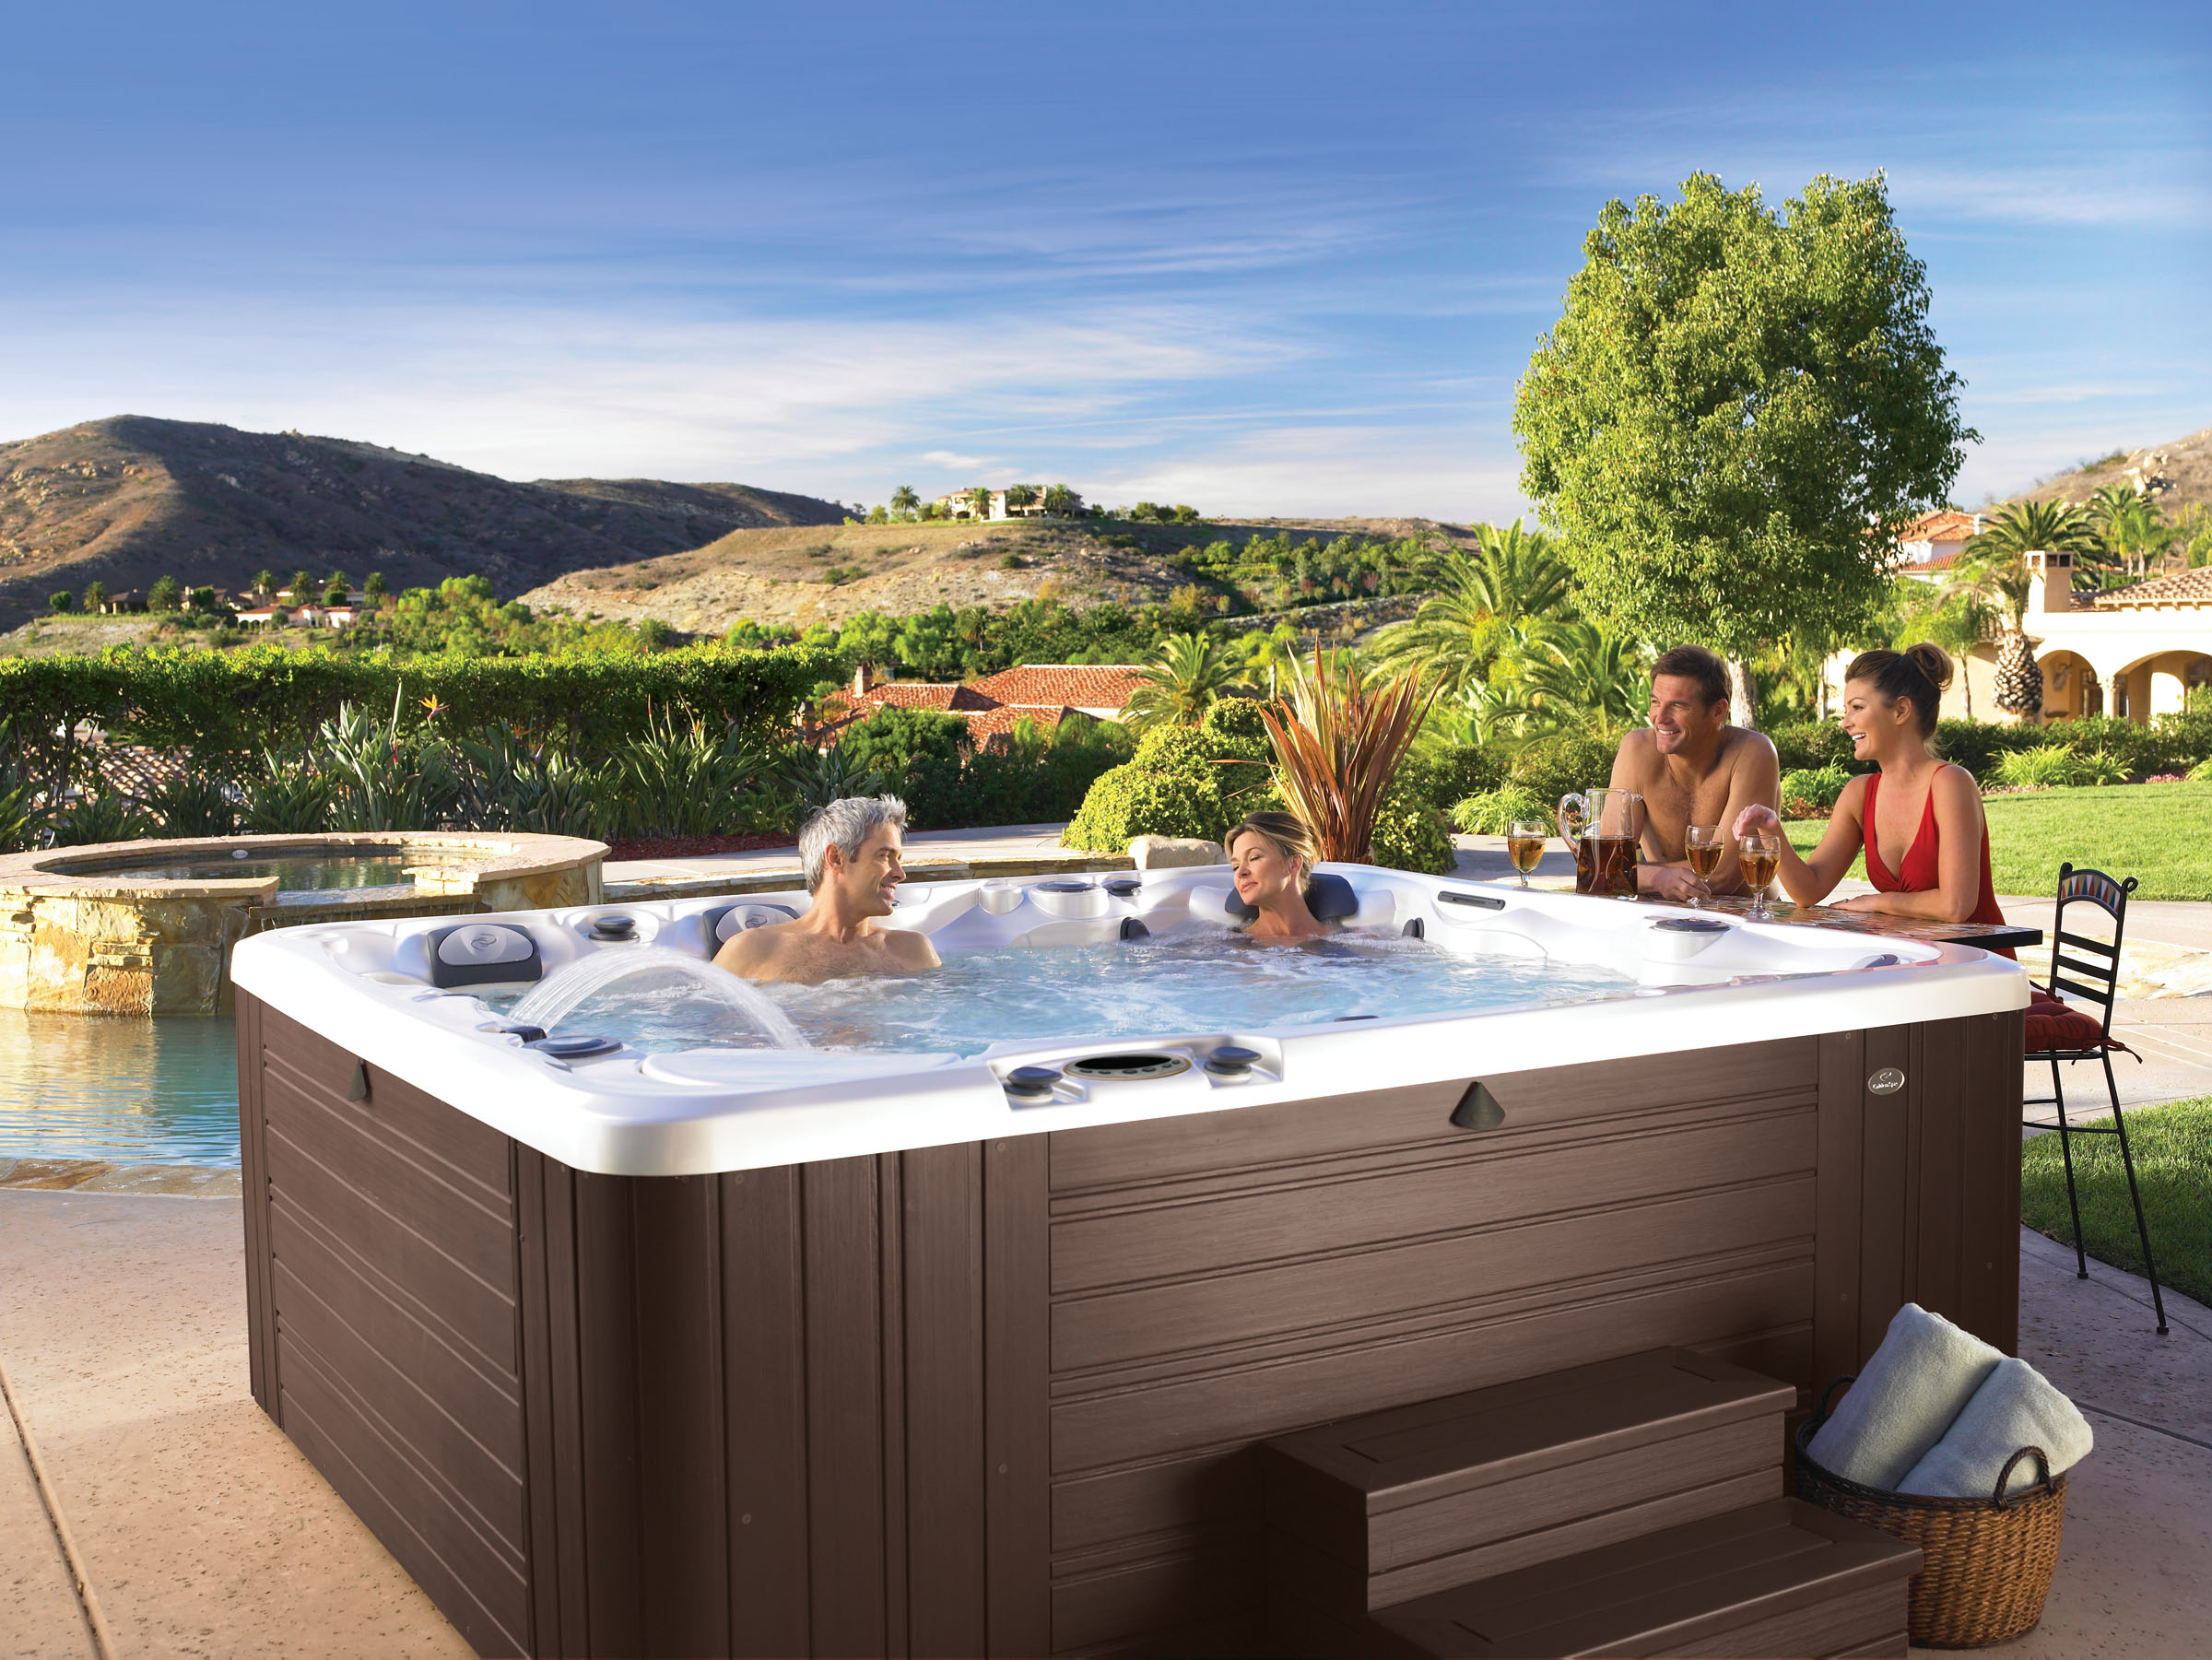 Where to buy a hot tub in dallas shopper 39 s guide - Jacuzzi en bois exterieur ...